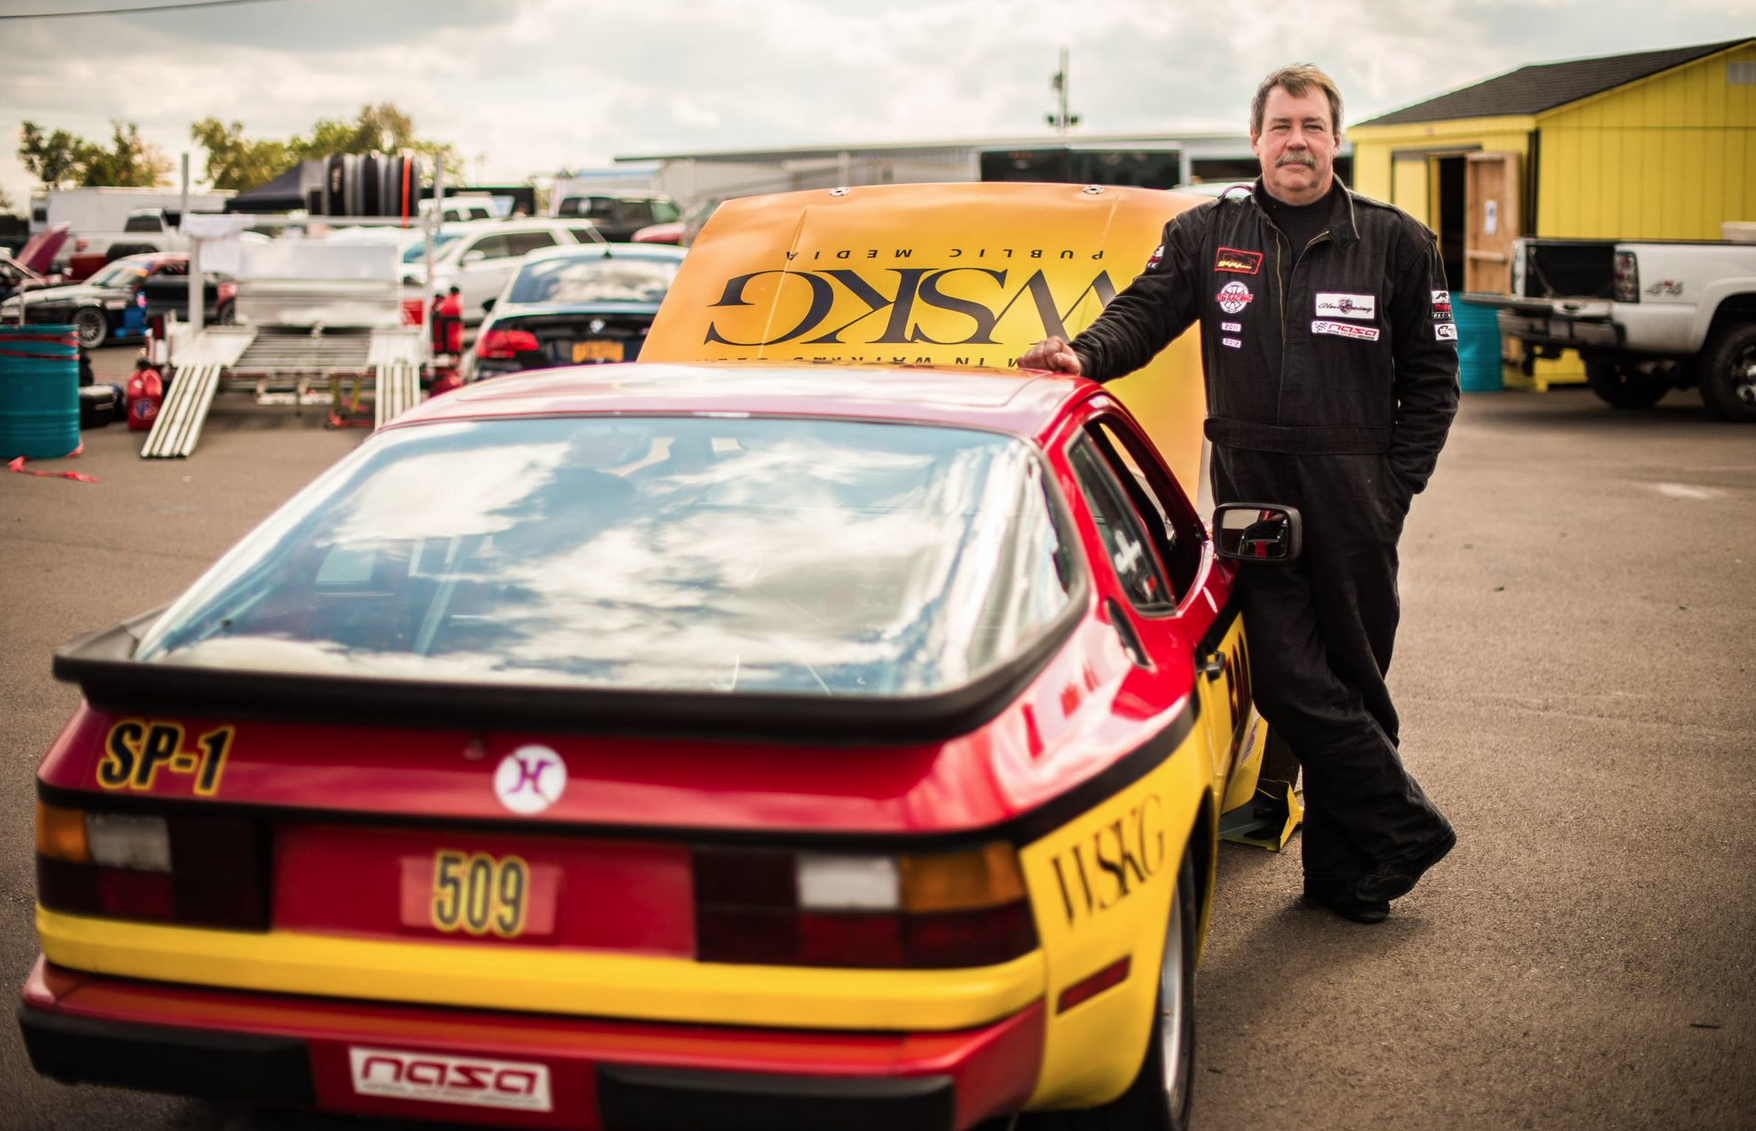 Brian Watson shows his love for WSKG with a customized racecar